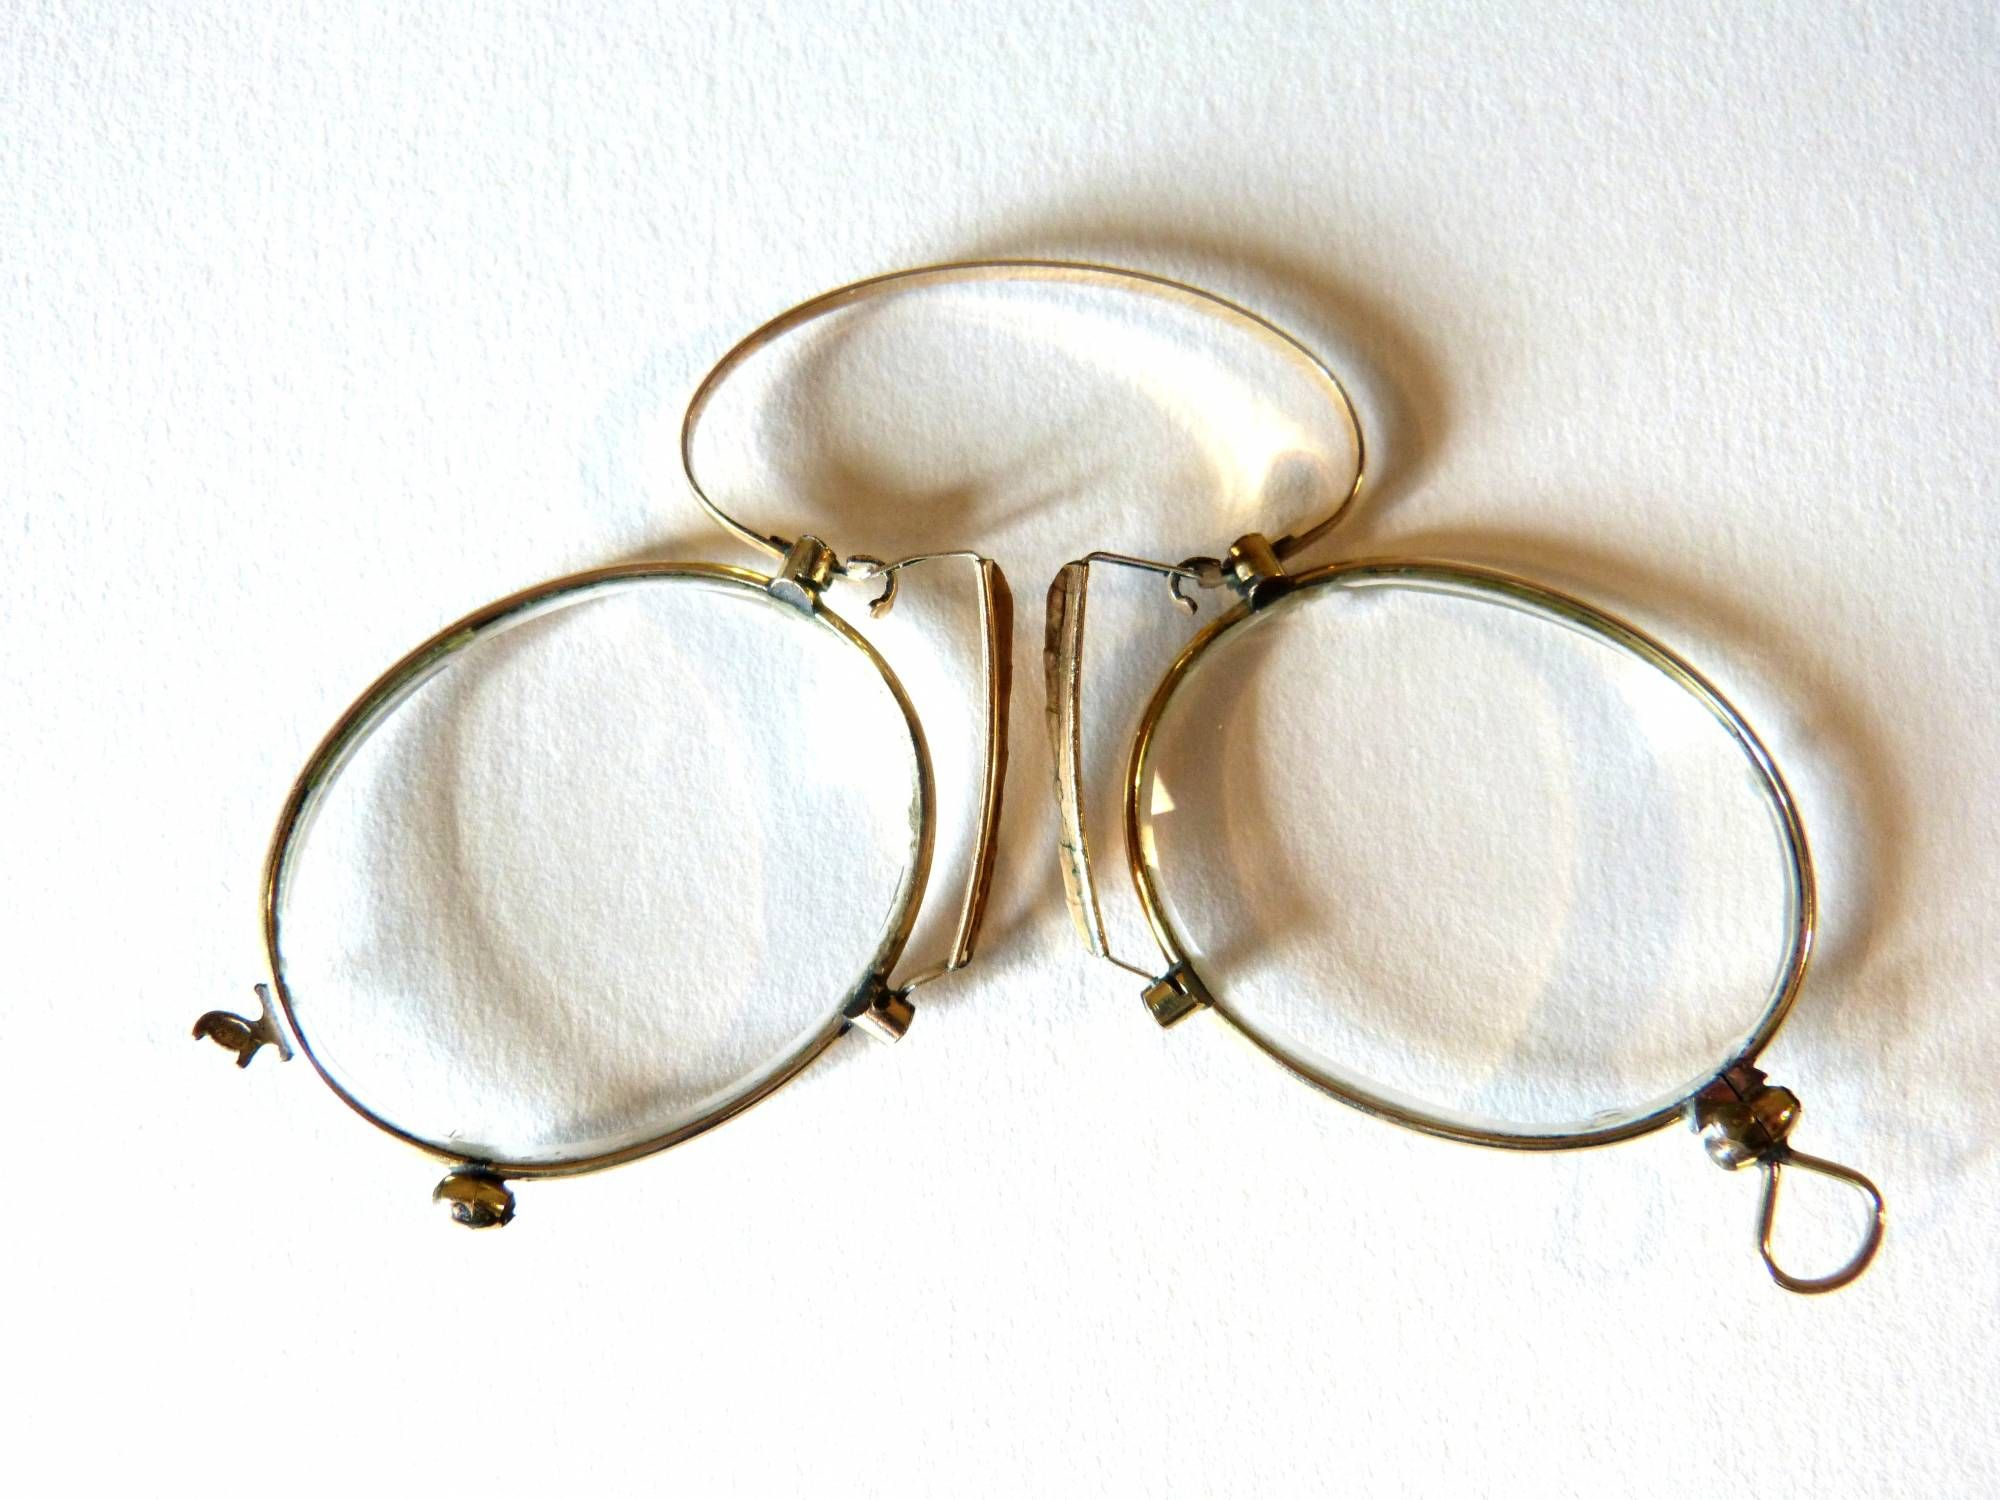 Antique In Gold Nose Optics Clip 1900 Plated Glasses For Sale Yfvby76g